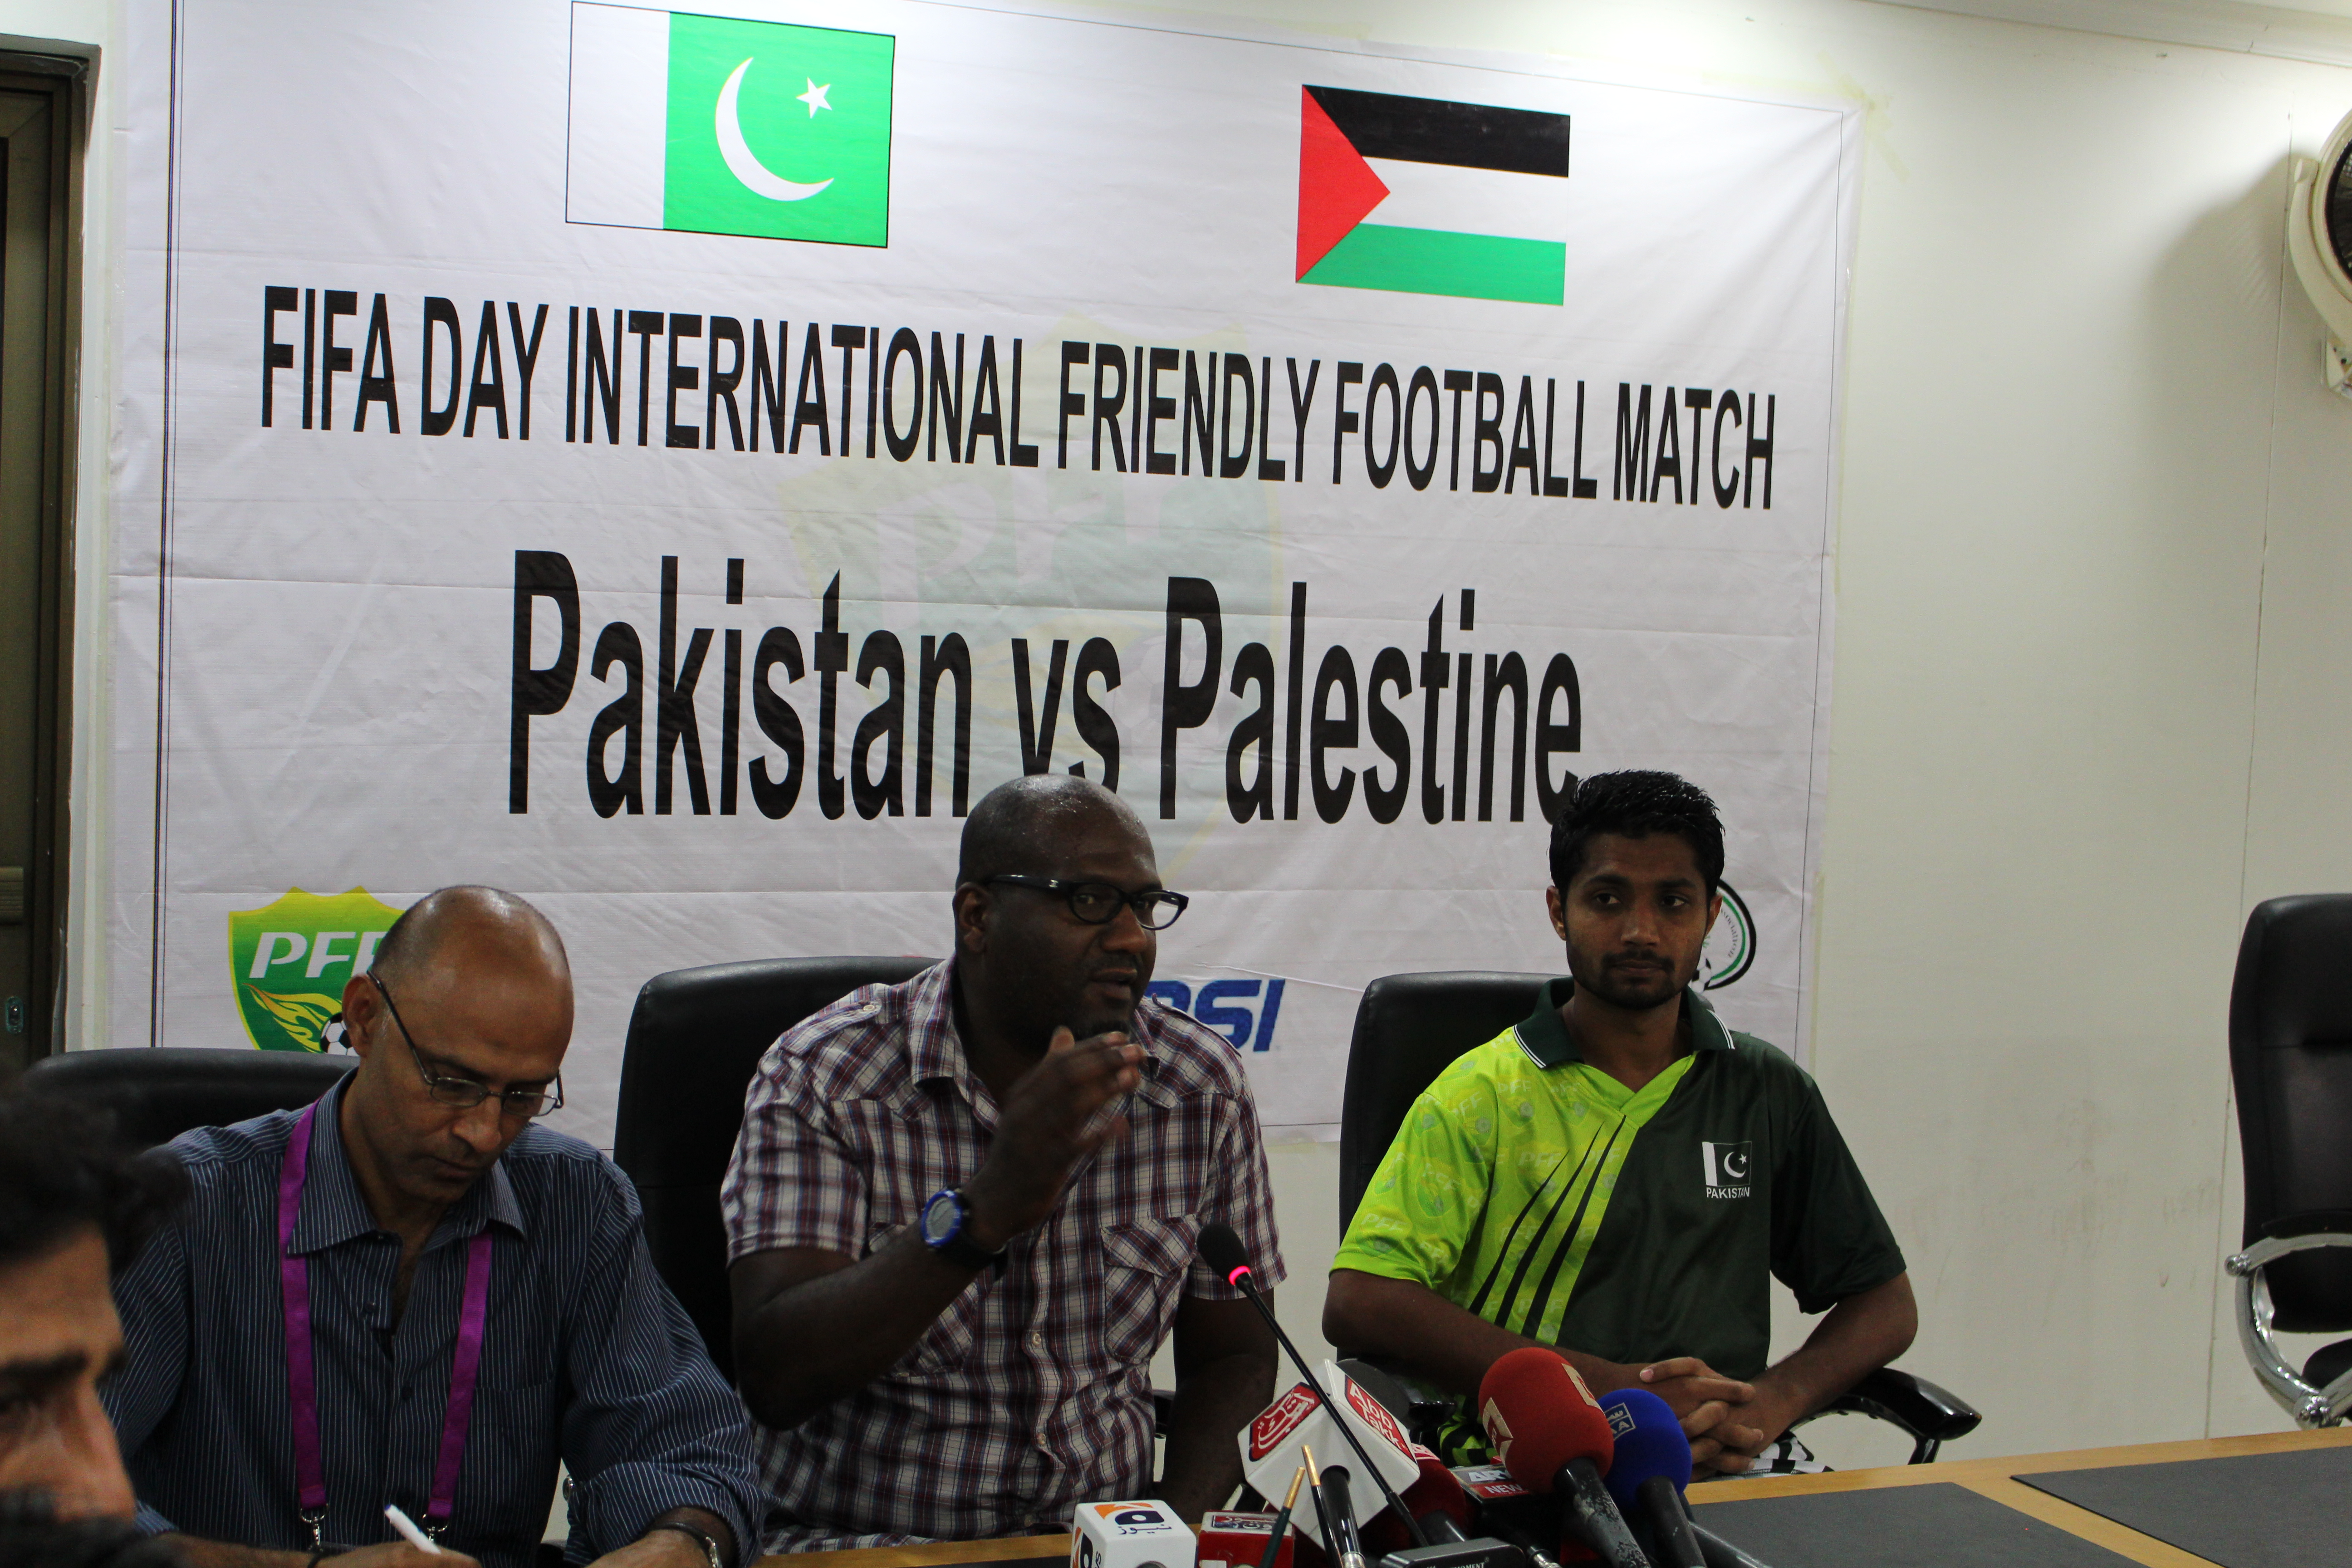 """Pakistan coach Shamlan: """"If Kaleemullah doesn't come, no problem then. I will play 11 players anyway."""""""